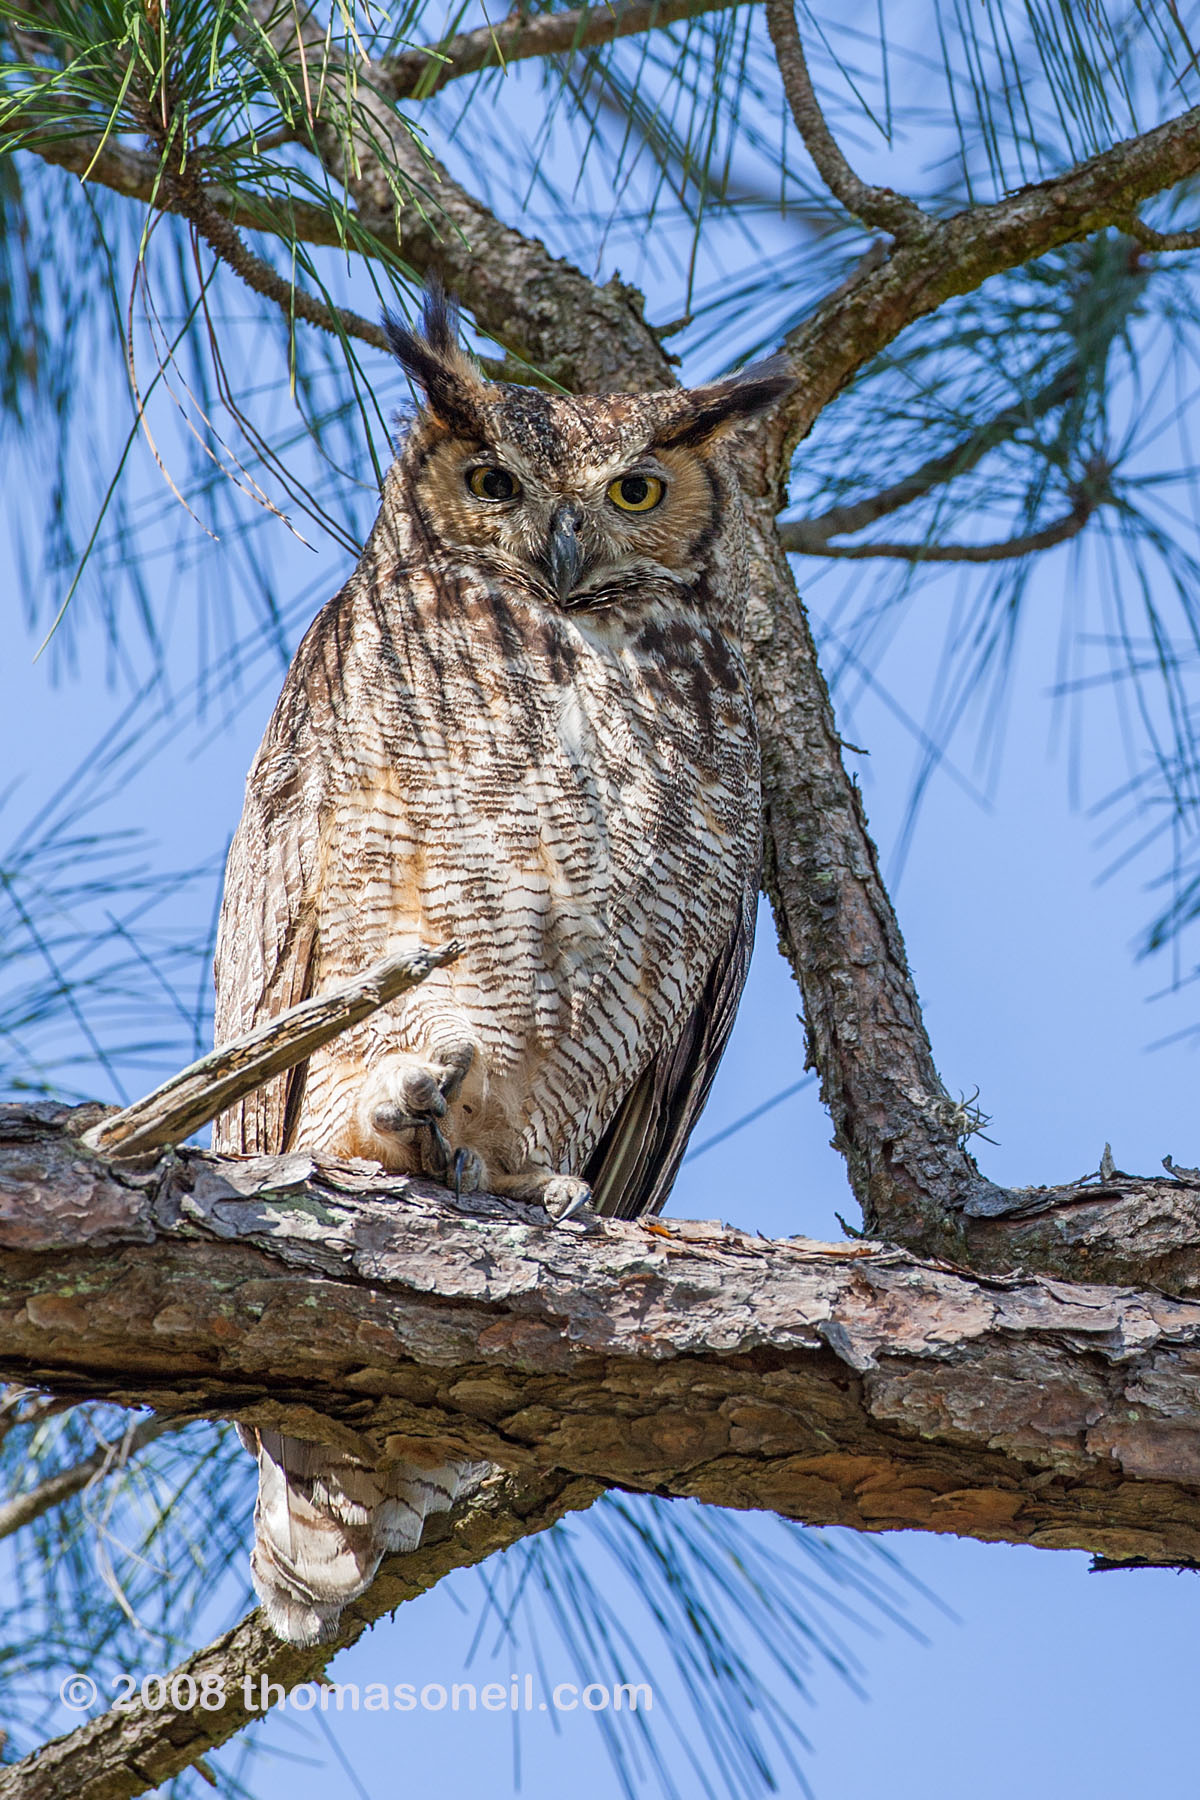 Great Horned Owl, Honeymoon Island State Park, Florida, March 2008.  Click for next photo.